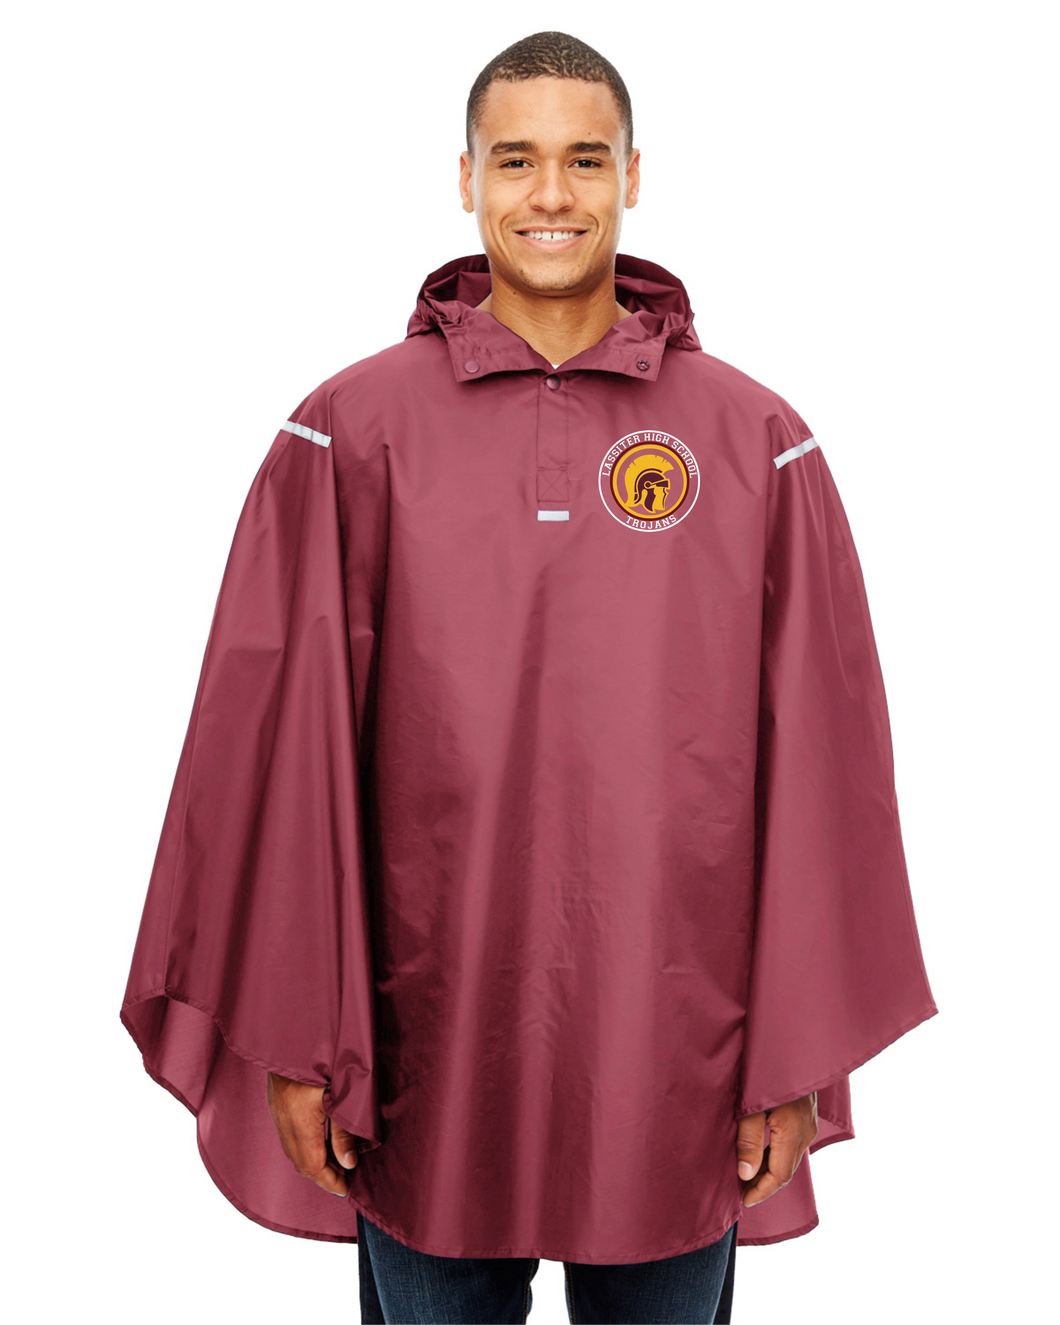 Item LAS-FB-460-2 - Team 365 Adult Zone Protect Packable Poncho - Lassiter Trojan Logo